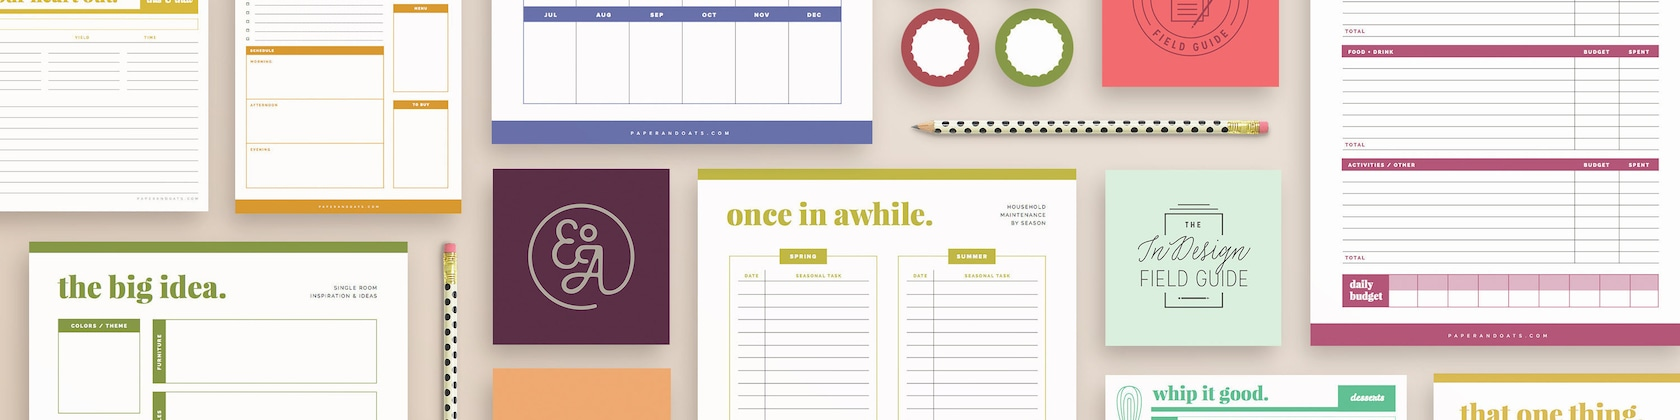 Printable planners organizers for home business by paperandoats paperandoats fandeluxe Image collections